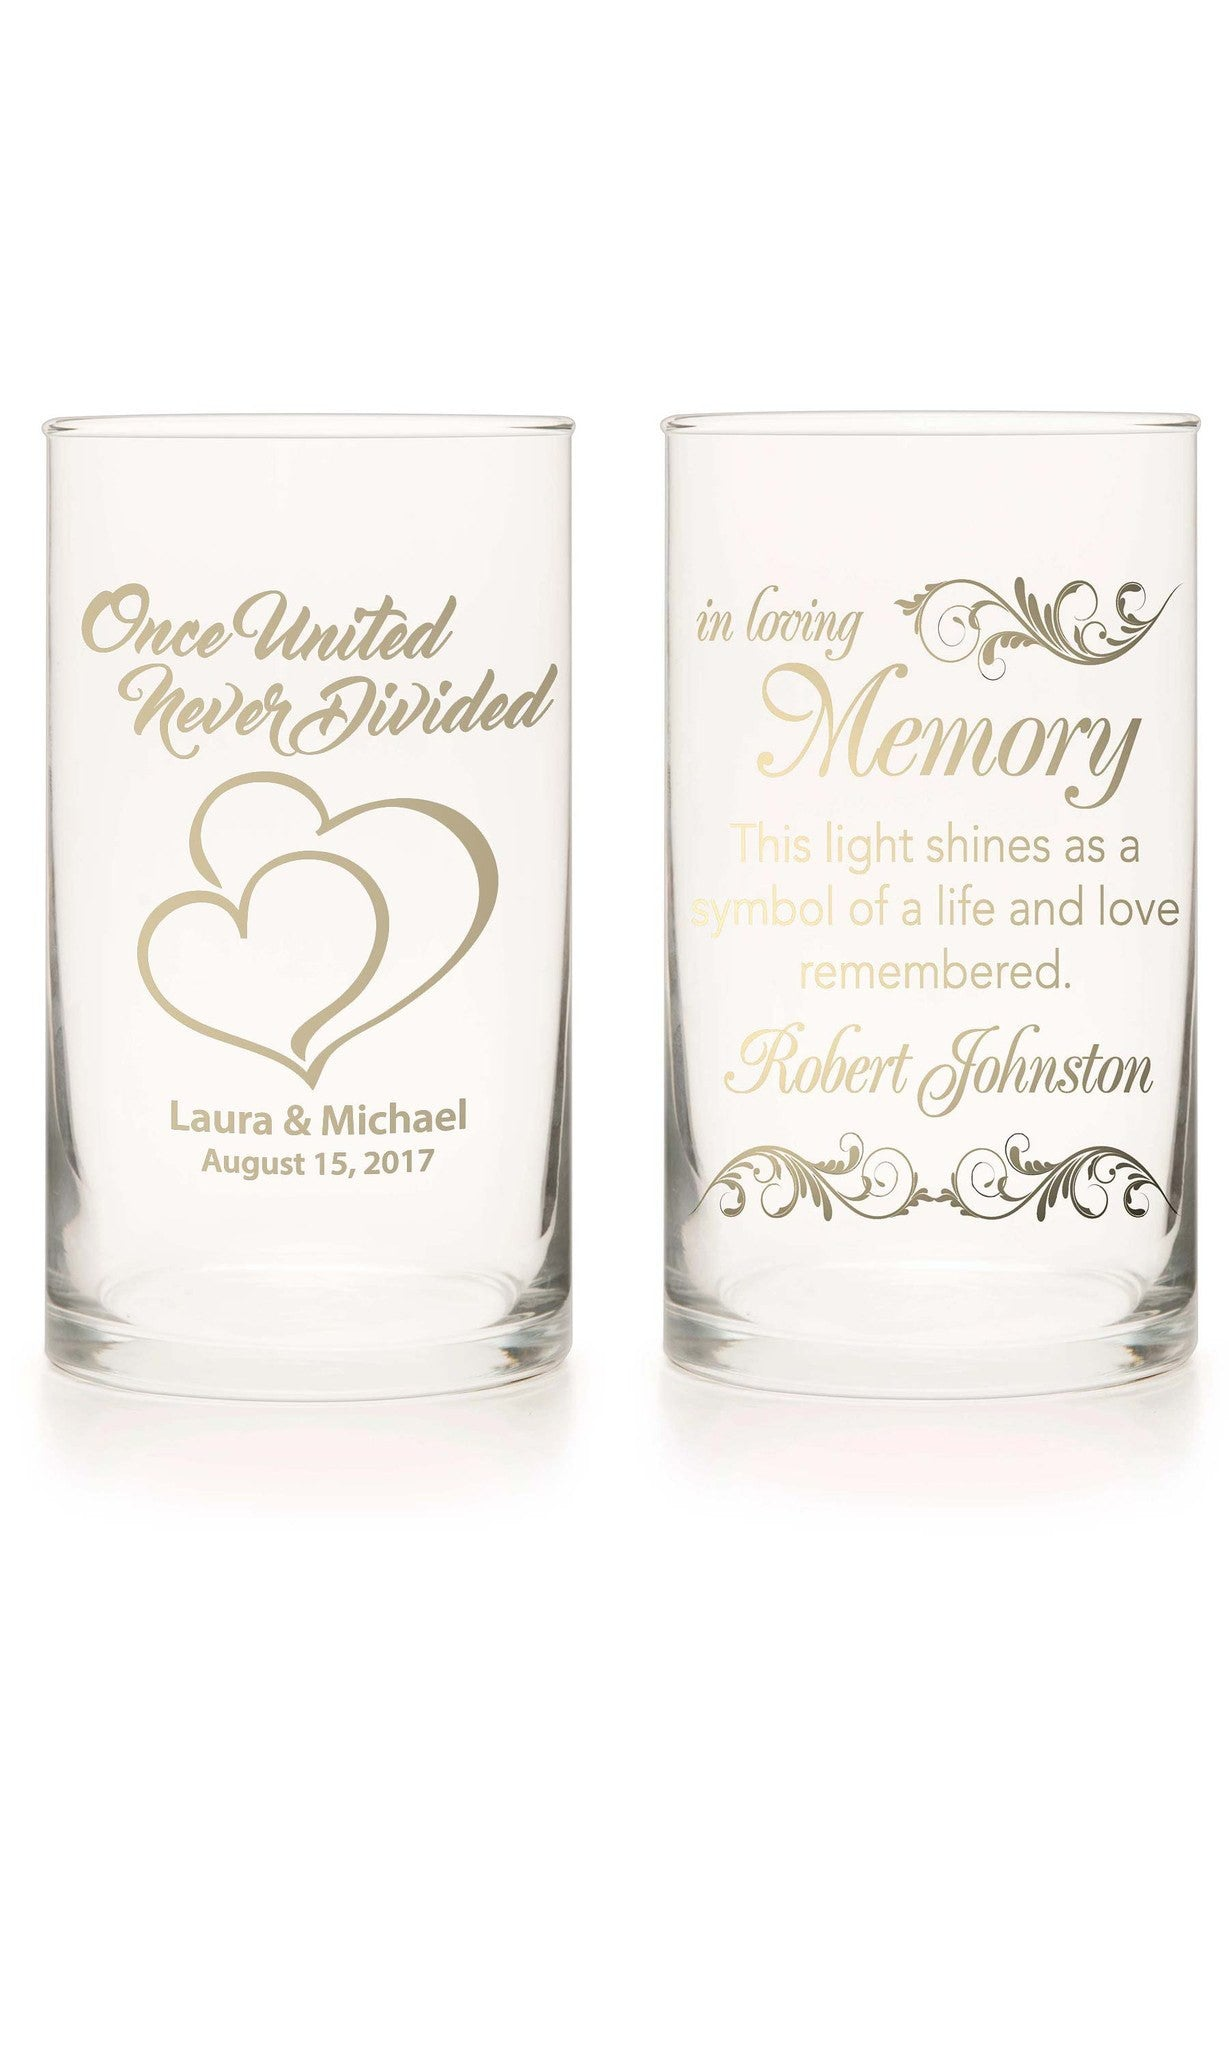 Unity Candle & Memorial Candle Set - Marry Me Gold - Personalized Candle Holders - Wedding Candles - 13